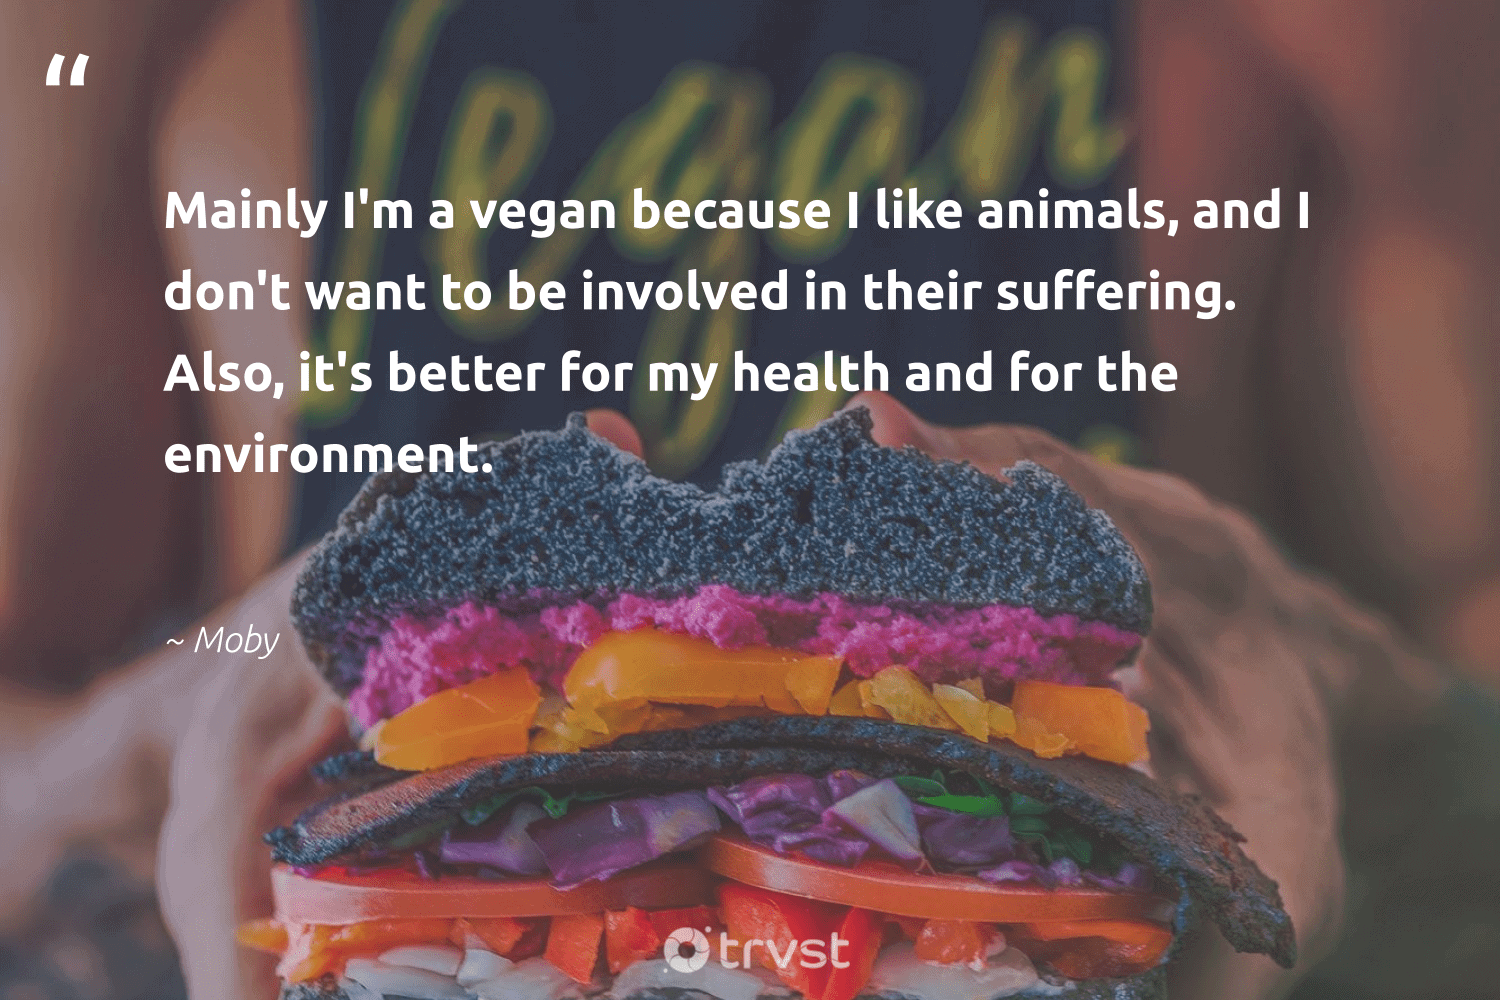 """""""Mainly I'm a vegan because I like animals, and I don't want to be involved in their suffering. Also, it's better for my health and for the environment.""""  - Moby #trvst #quotes #environment #animals #health #vegan #mothernature #sustainability #gogreen #changetheworld #conservation #greenliving"""